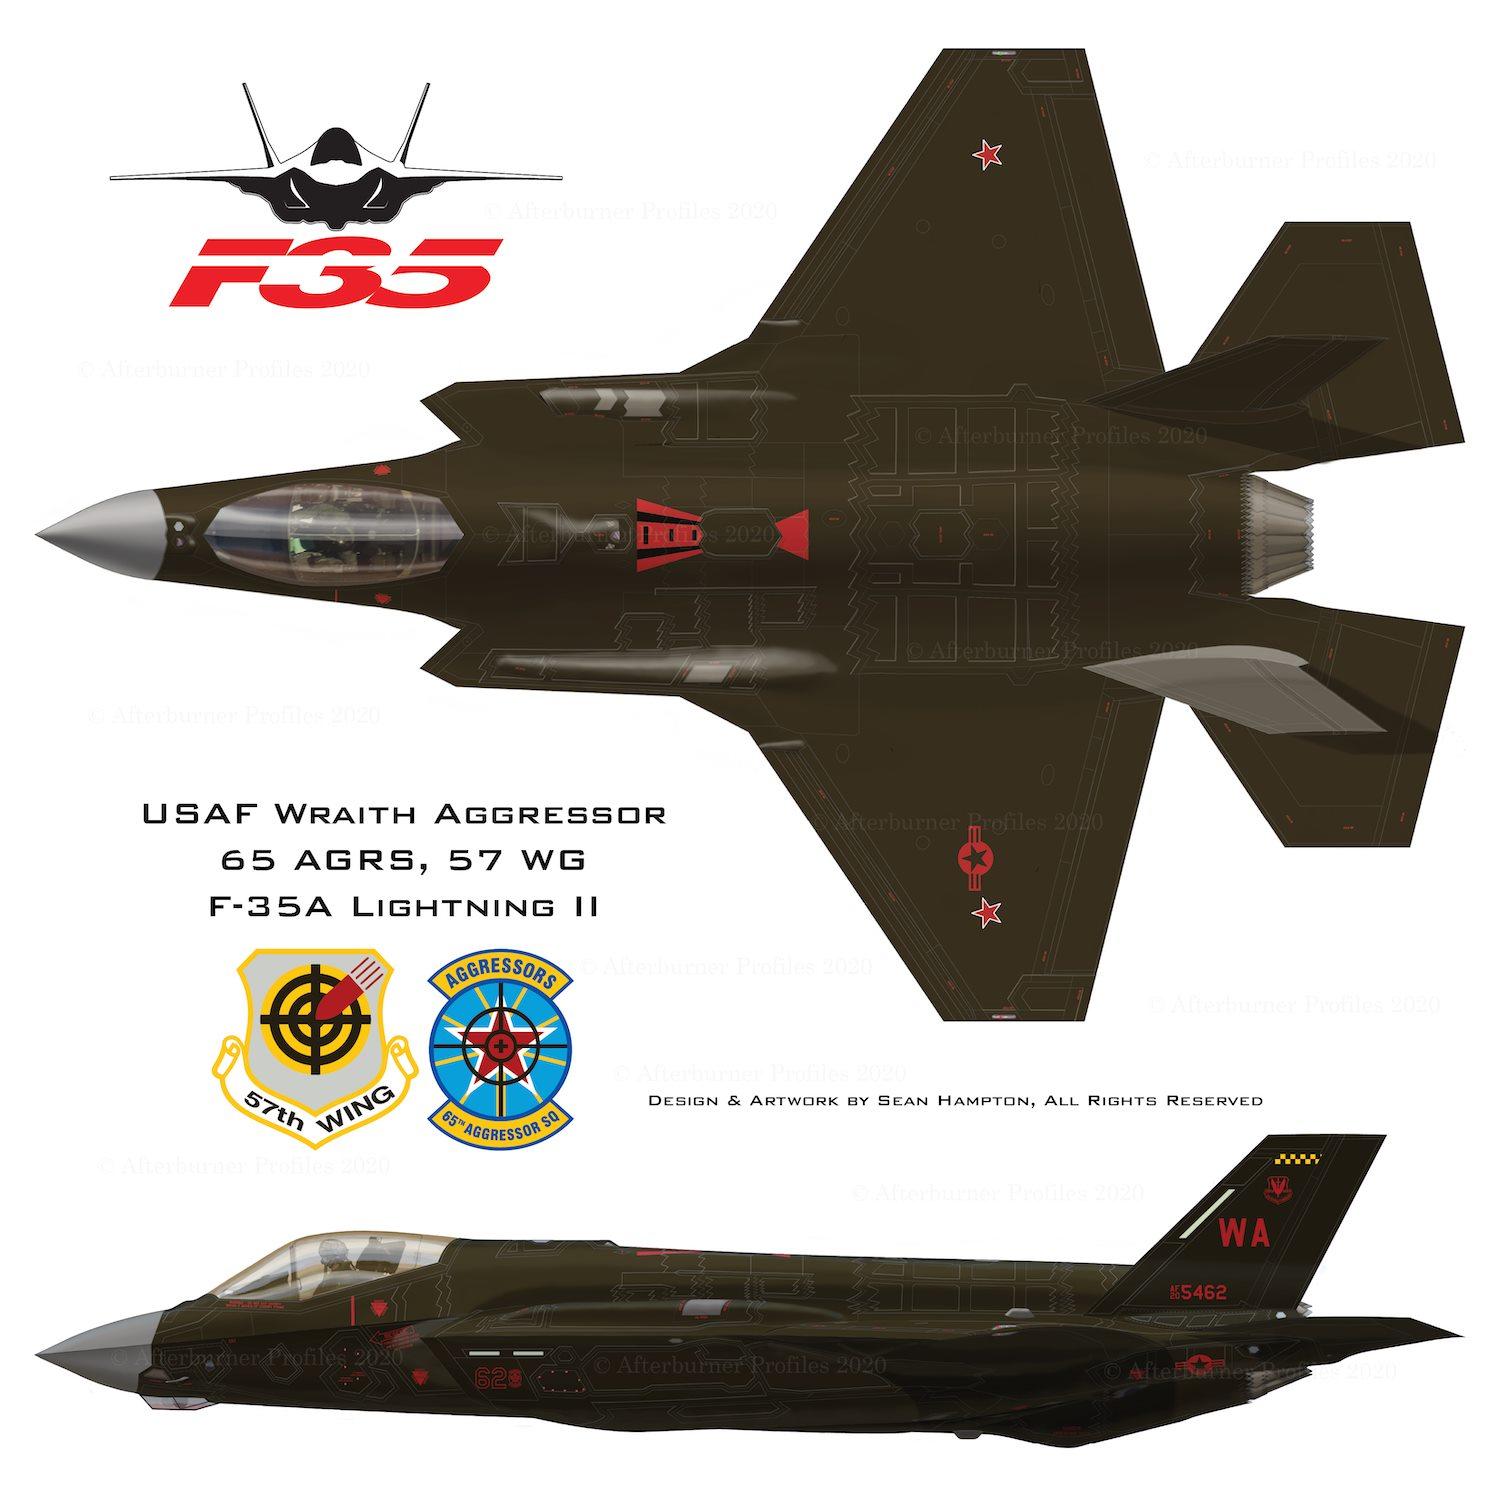 Here are some of the paint schemes that future F-35 Aggressors could wear